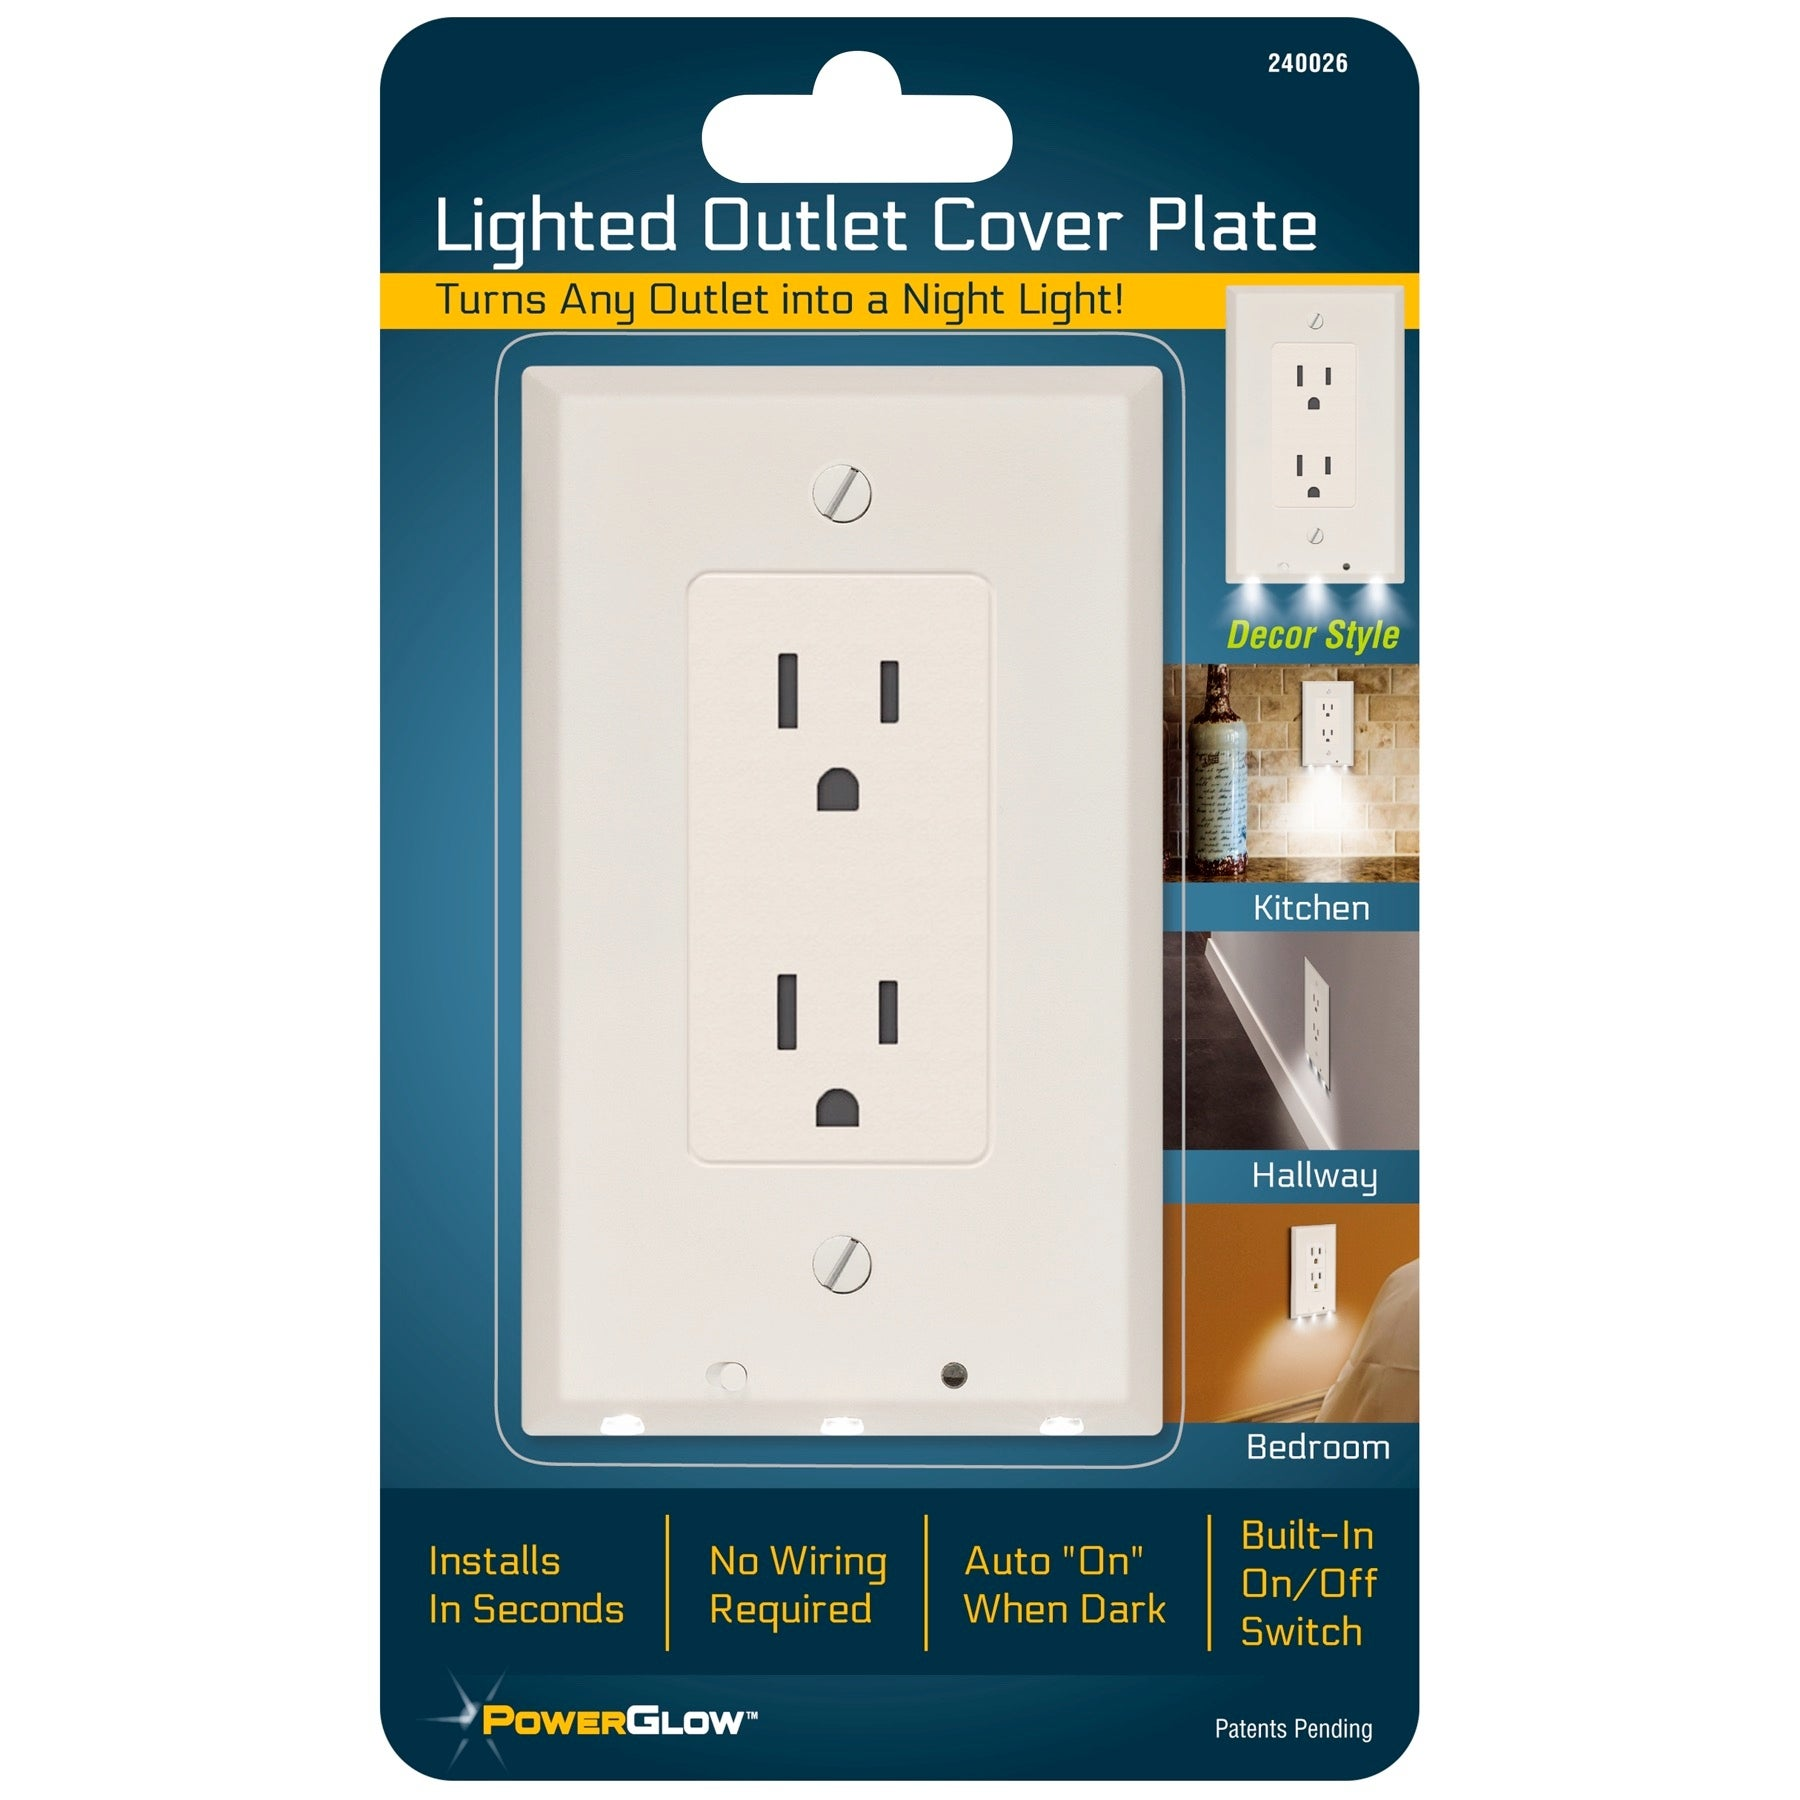 Powerglow wall outlet plate 3 led night light onoff switch white powerglow wall outlet plate 3 led night light onoff switch white decor 240026 free shipping on orders over 45 overstock 25690787 aloadofball Images